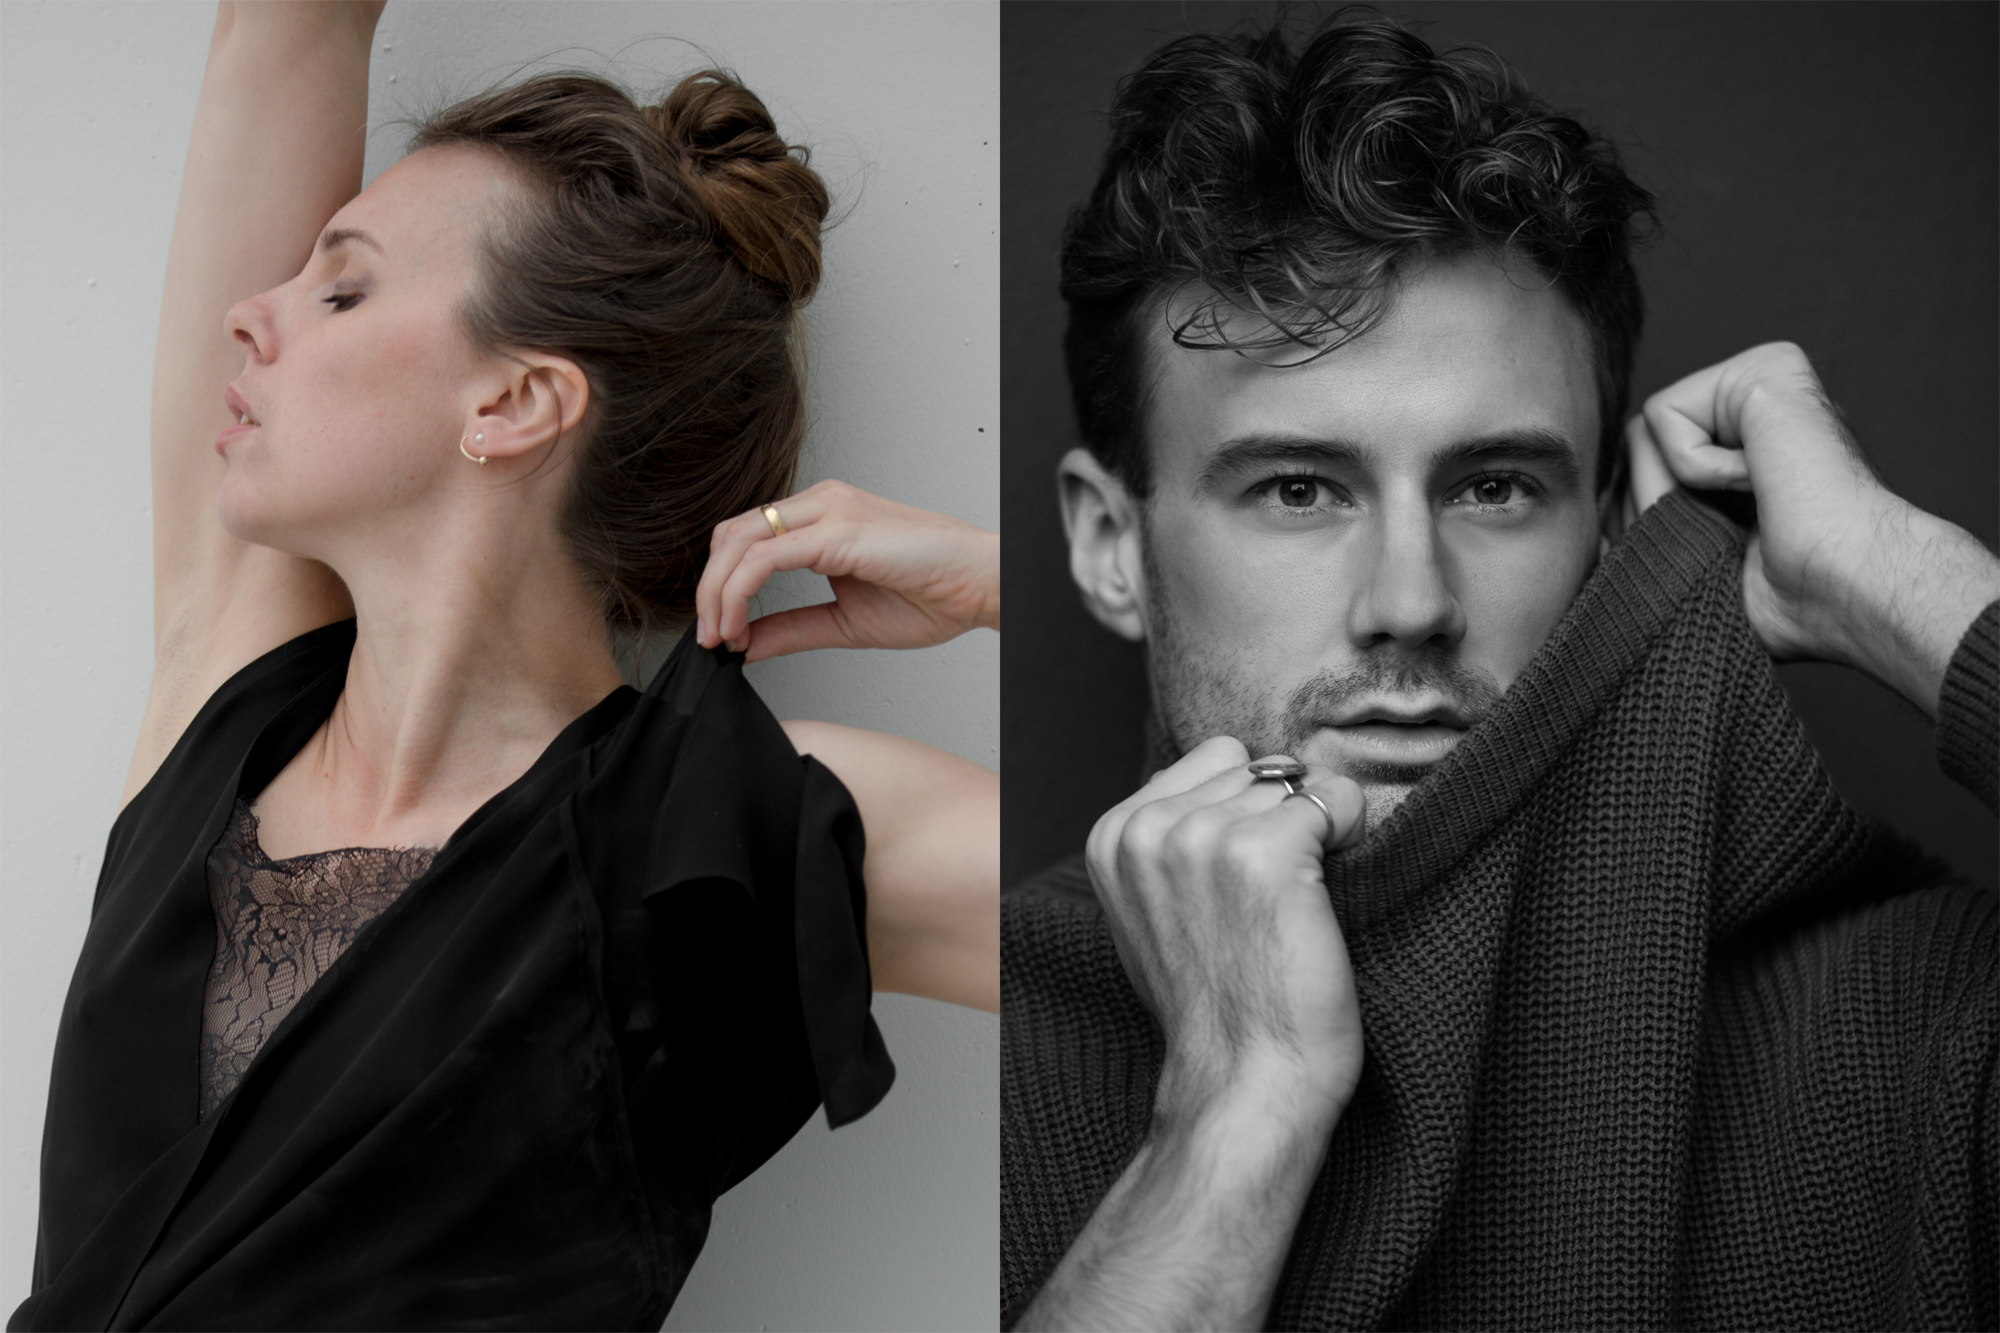 Ballet BC Artists in Residence Alexis Fletcher (colour headshot, left) and Peter Smida (greyscale headshot, right).